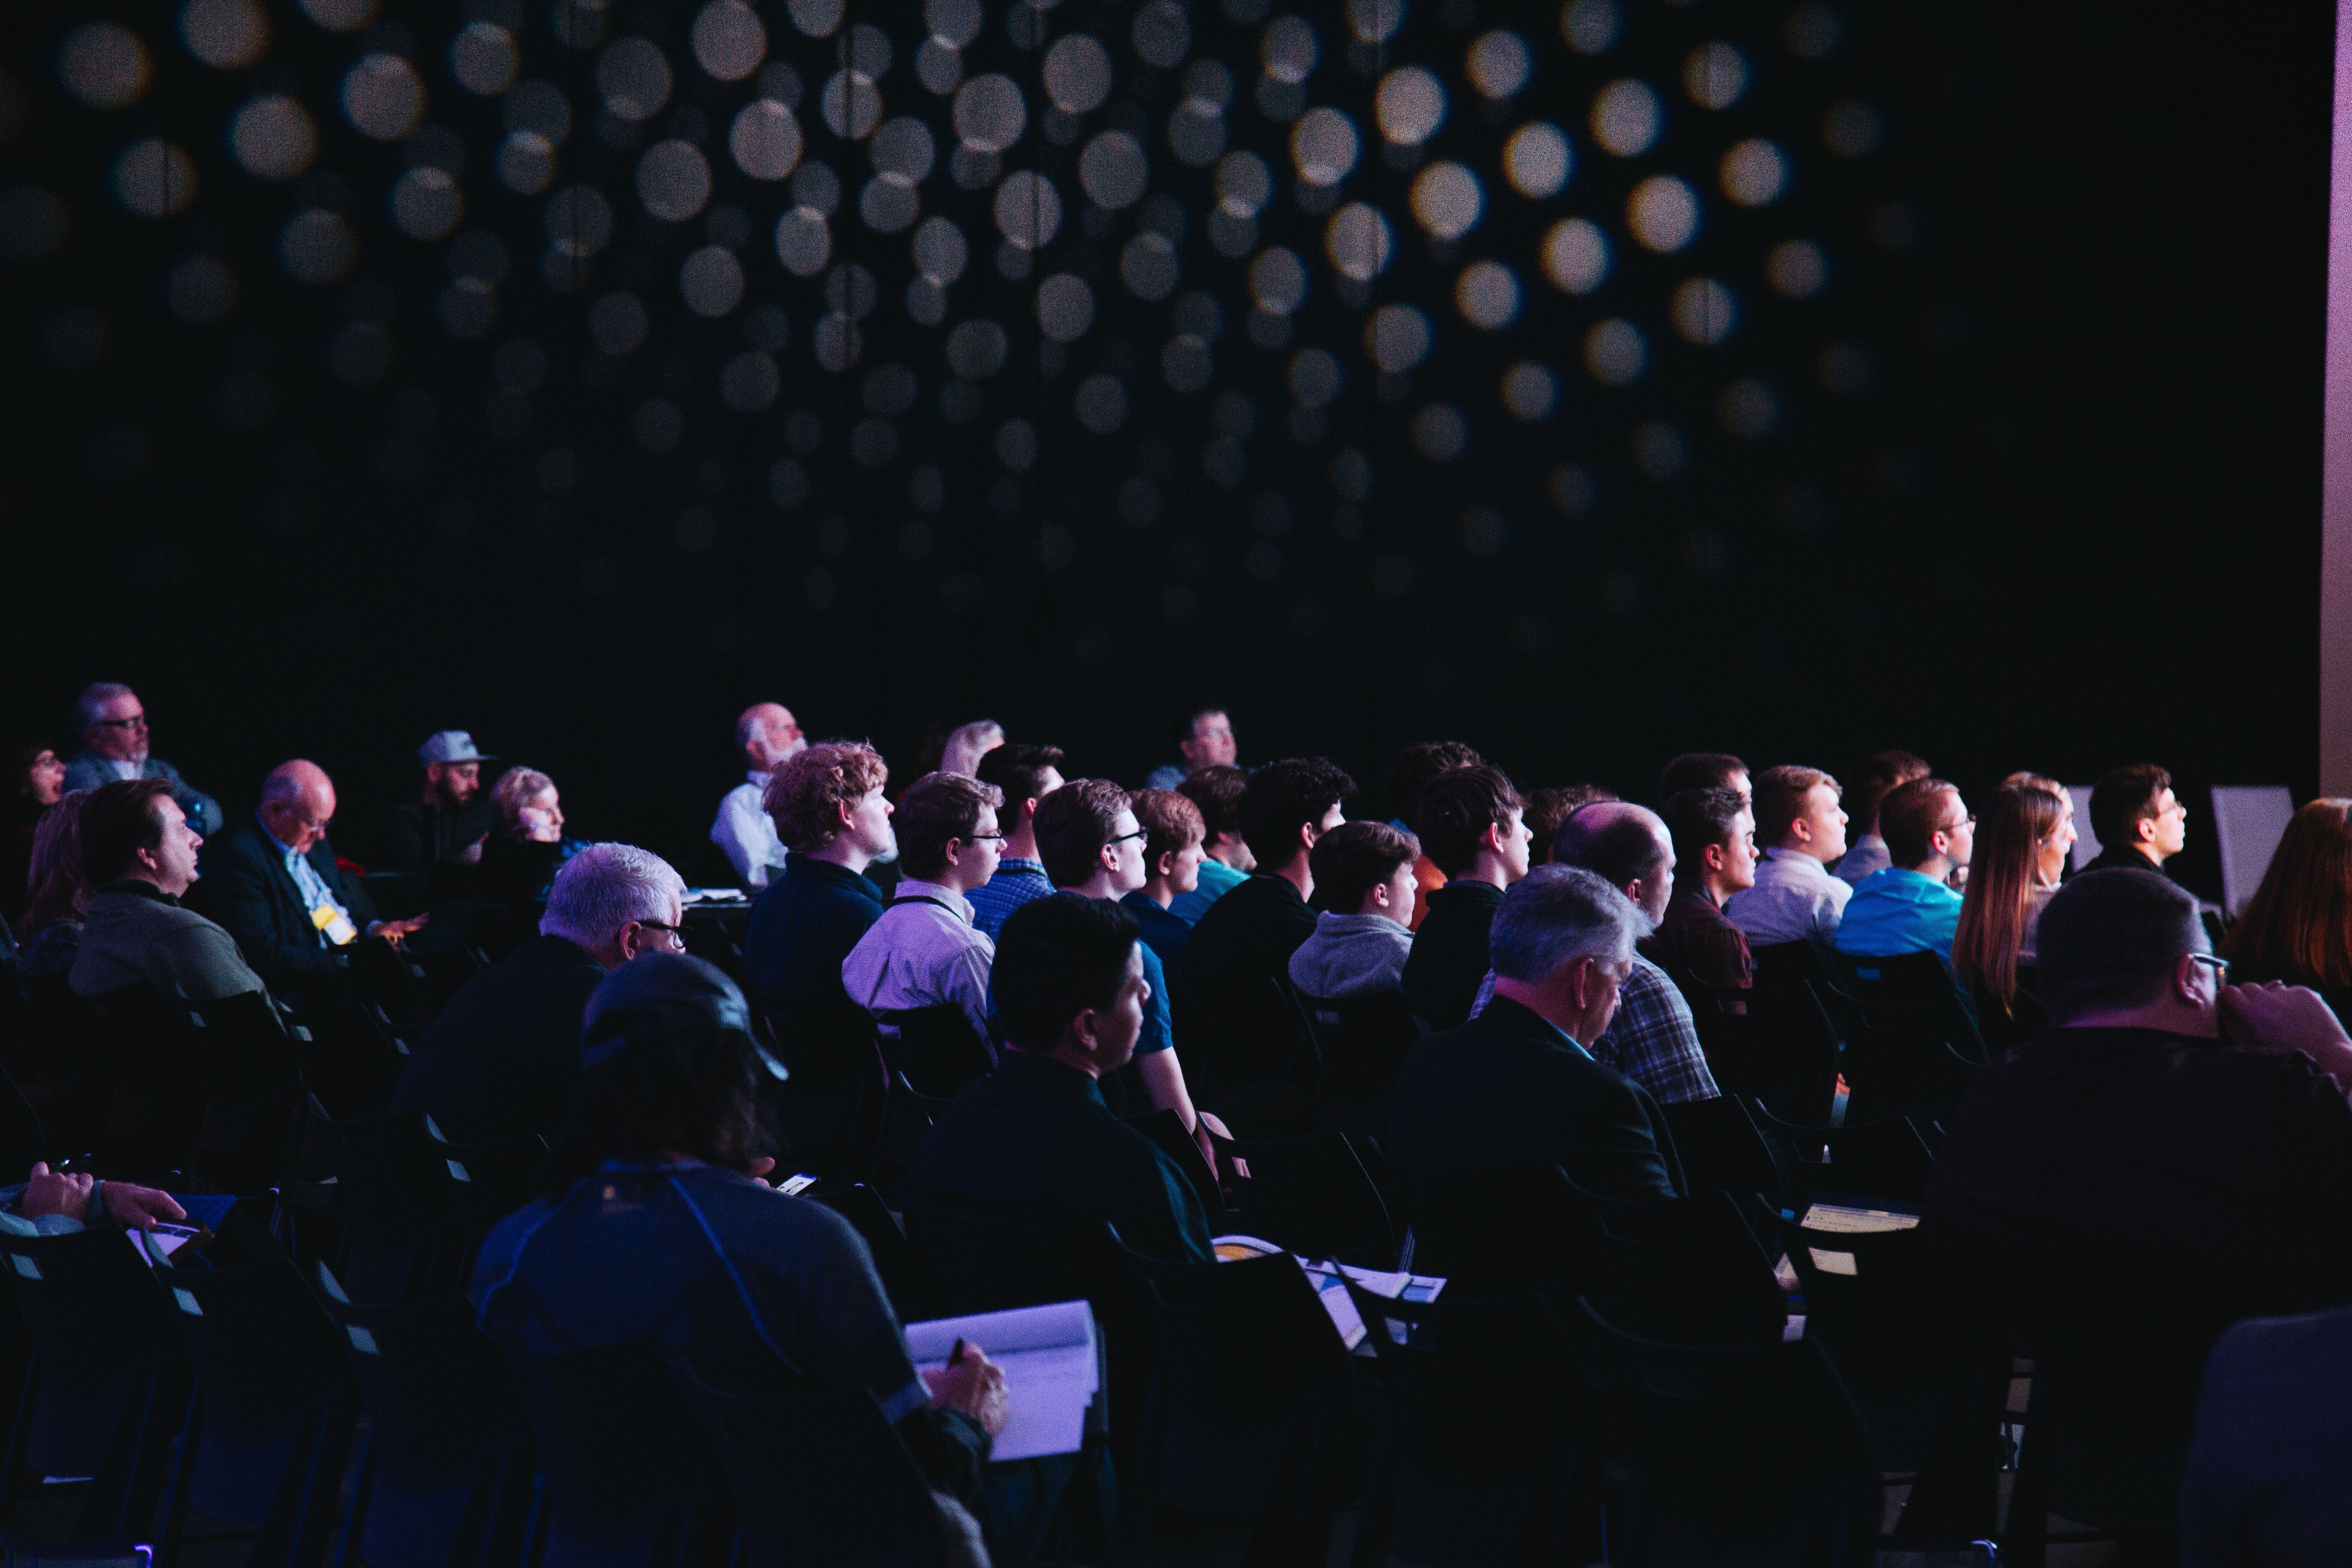 The Great Data Heist Drops its Cover at Manchester Central  Europe's Largest Data Summit Reveals Latest Trends and Tech